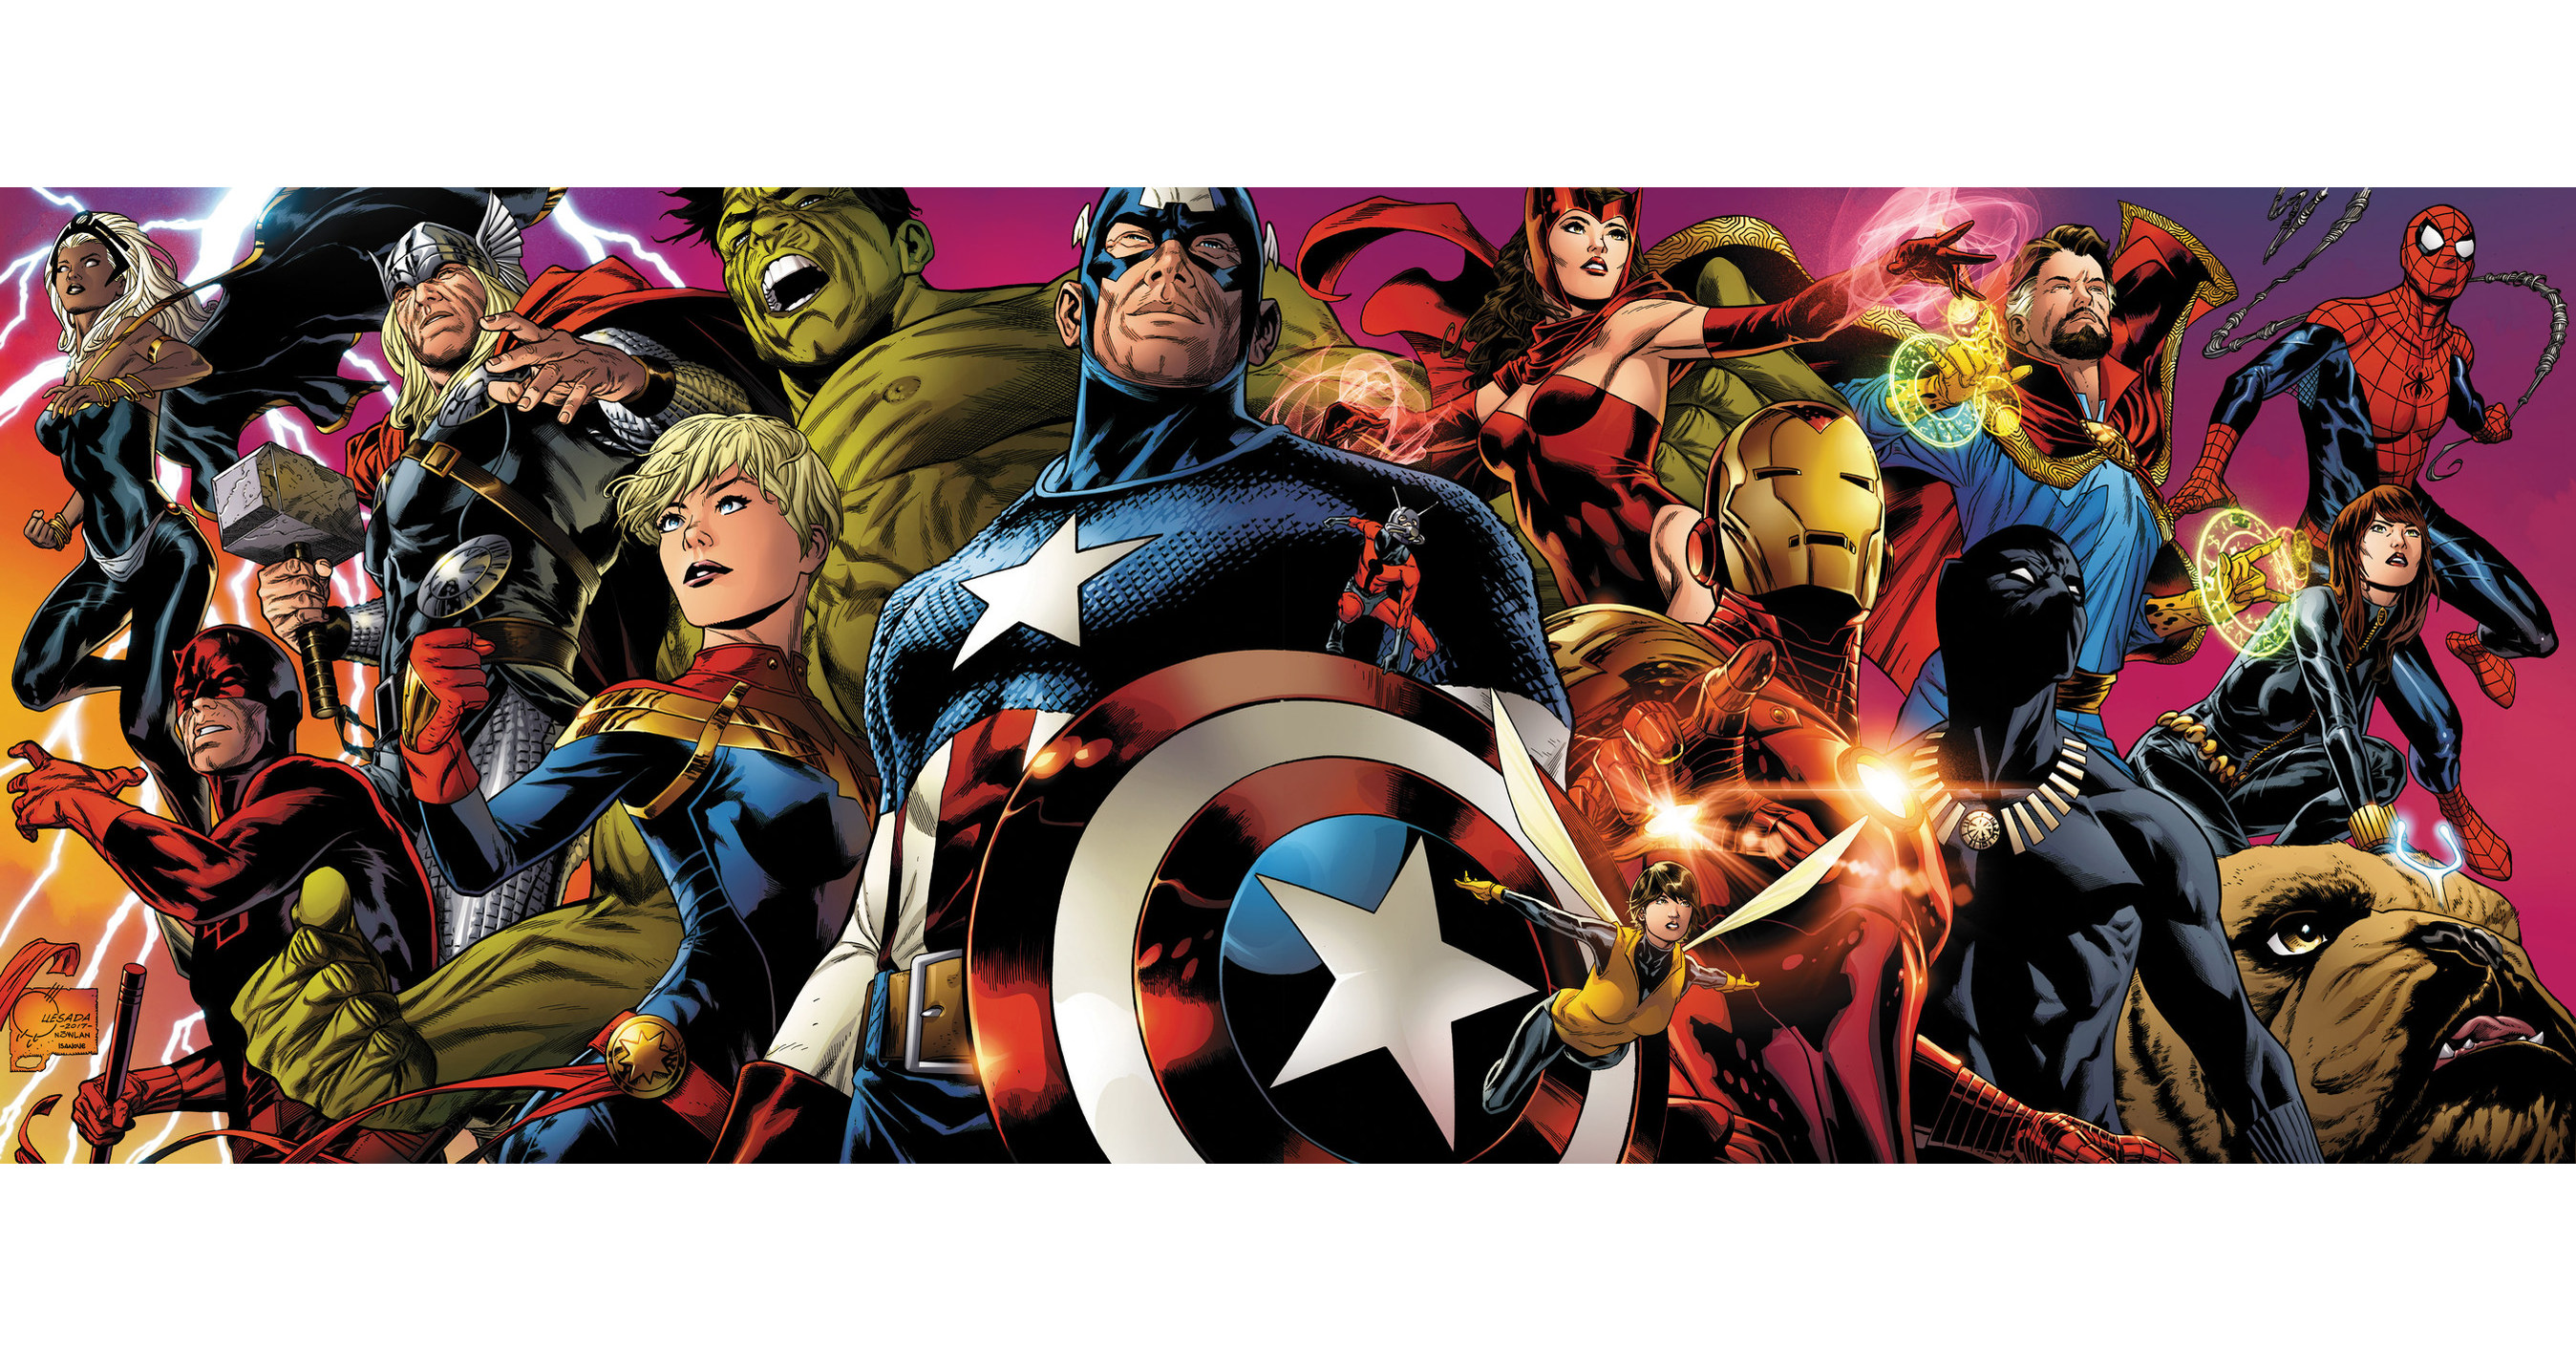 restructuring at marvel 9-298-059 rev: august 13, 2007 benjamin c esty jason auerbach bankruptcy and restructuring at marvel entertainment group not since the big retailing bankruptcies of the early 1990s has so much money been lost on wall street.